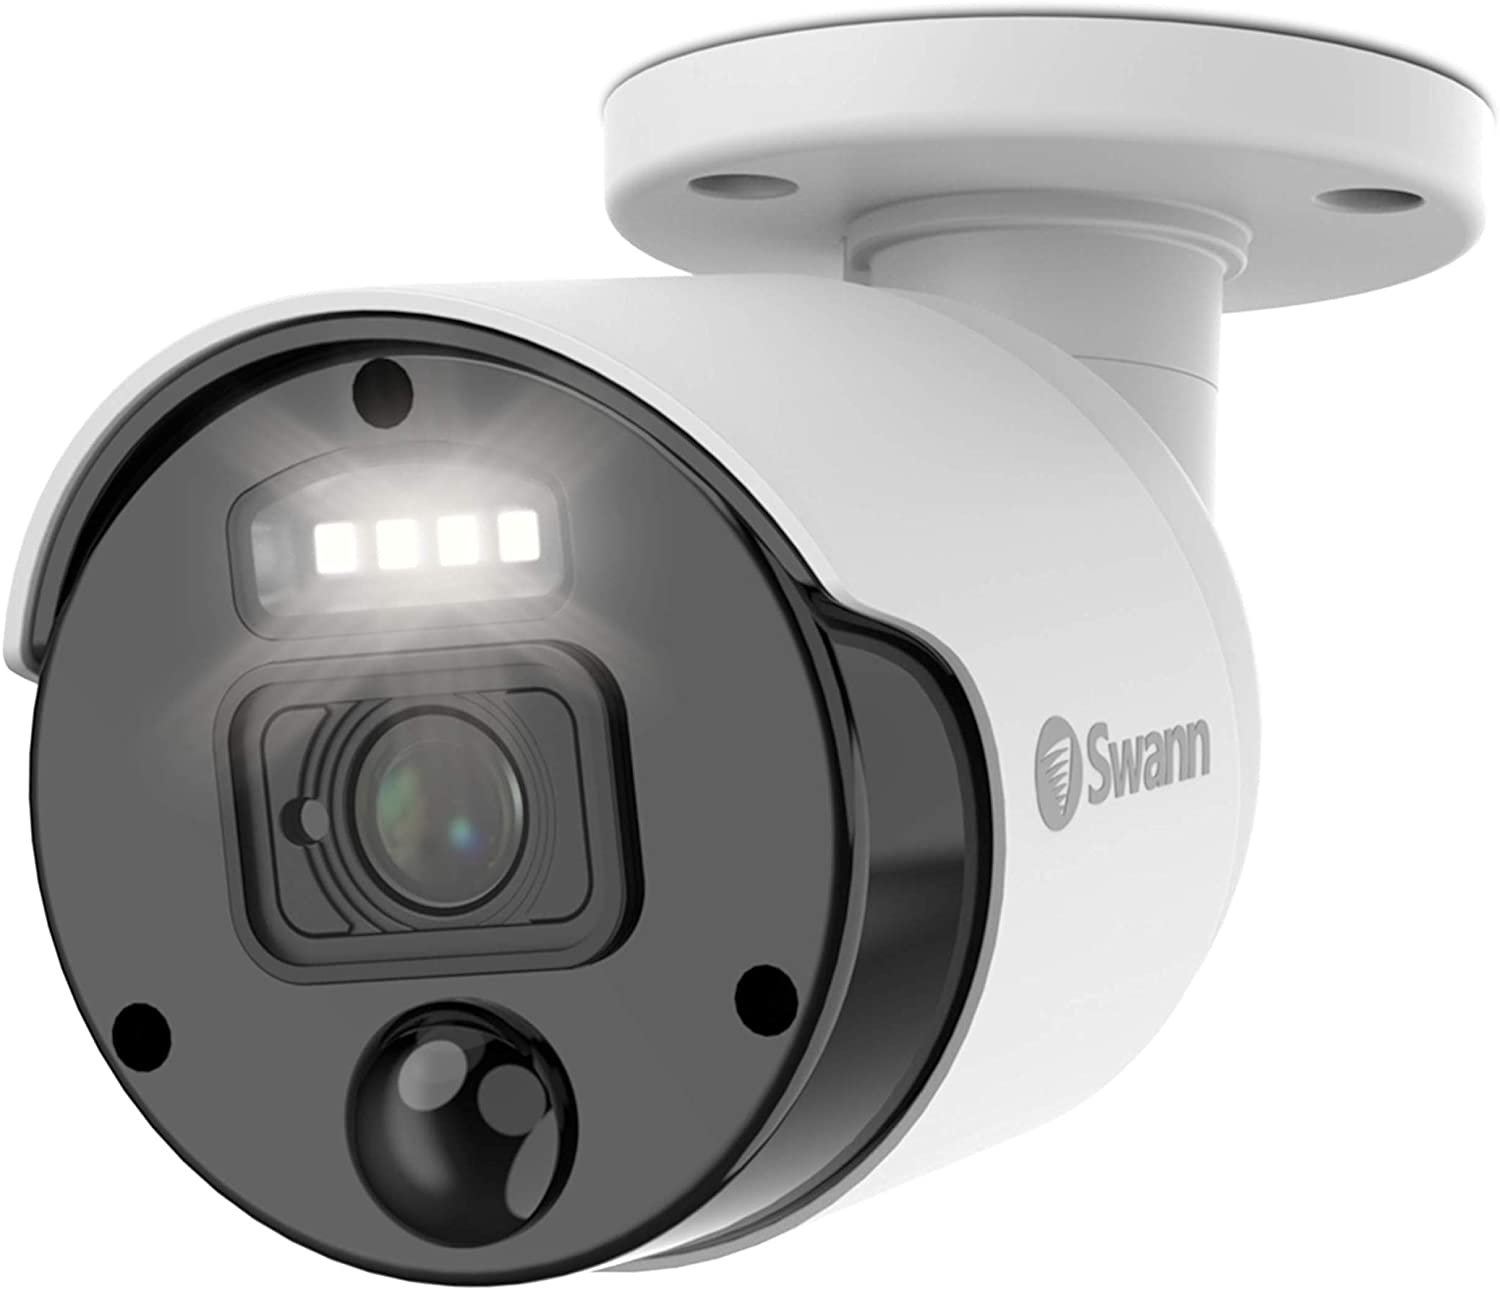 Swann PIR Bullet Security Camera & Spotlight, 4K Upscale Surveillance Cam w/Color Night Vision, Indoor/Outdoor, Heat & Motion Sensing, 1-Way Audio, Add to NVR, SWNHD-875WLB